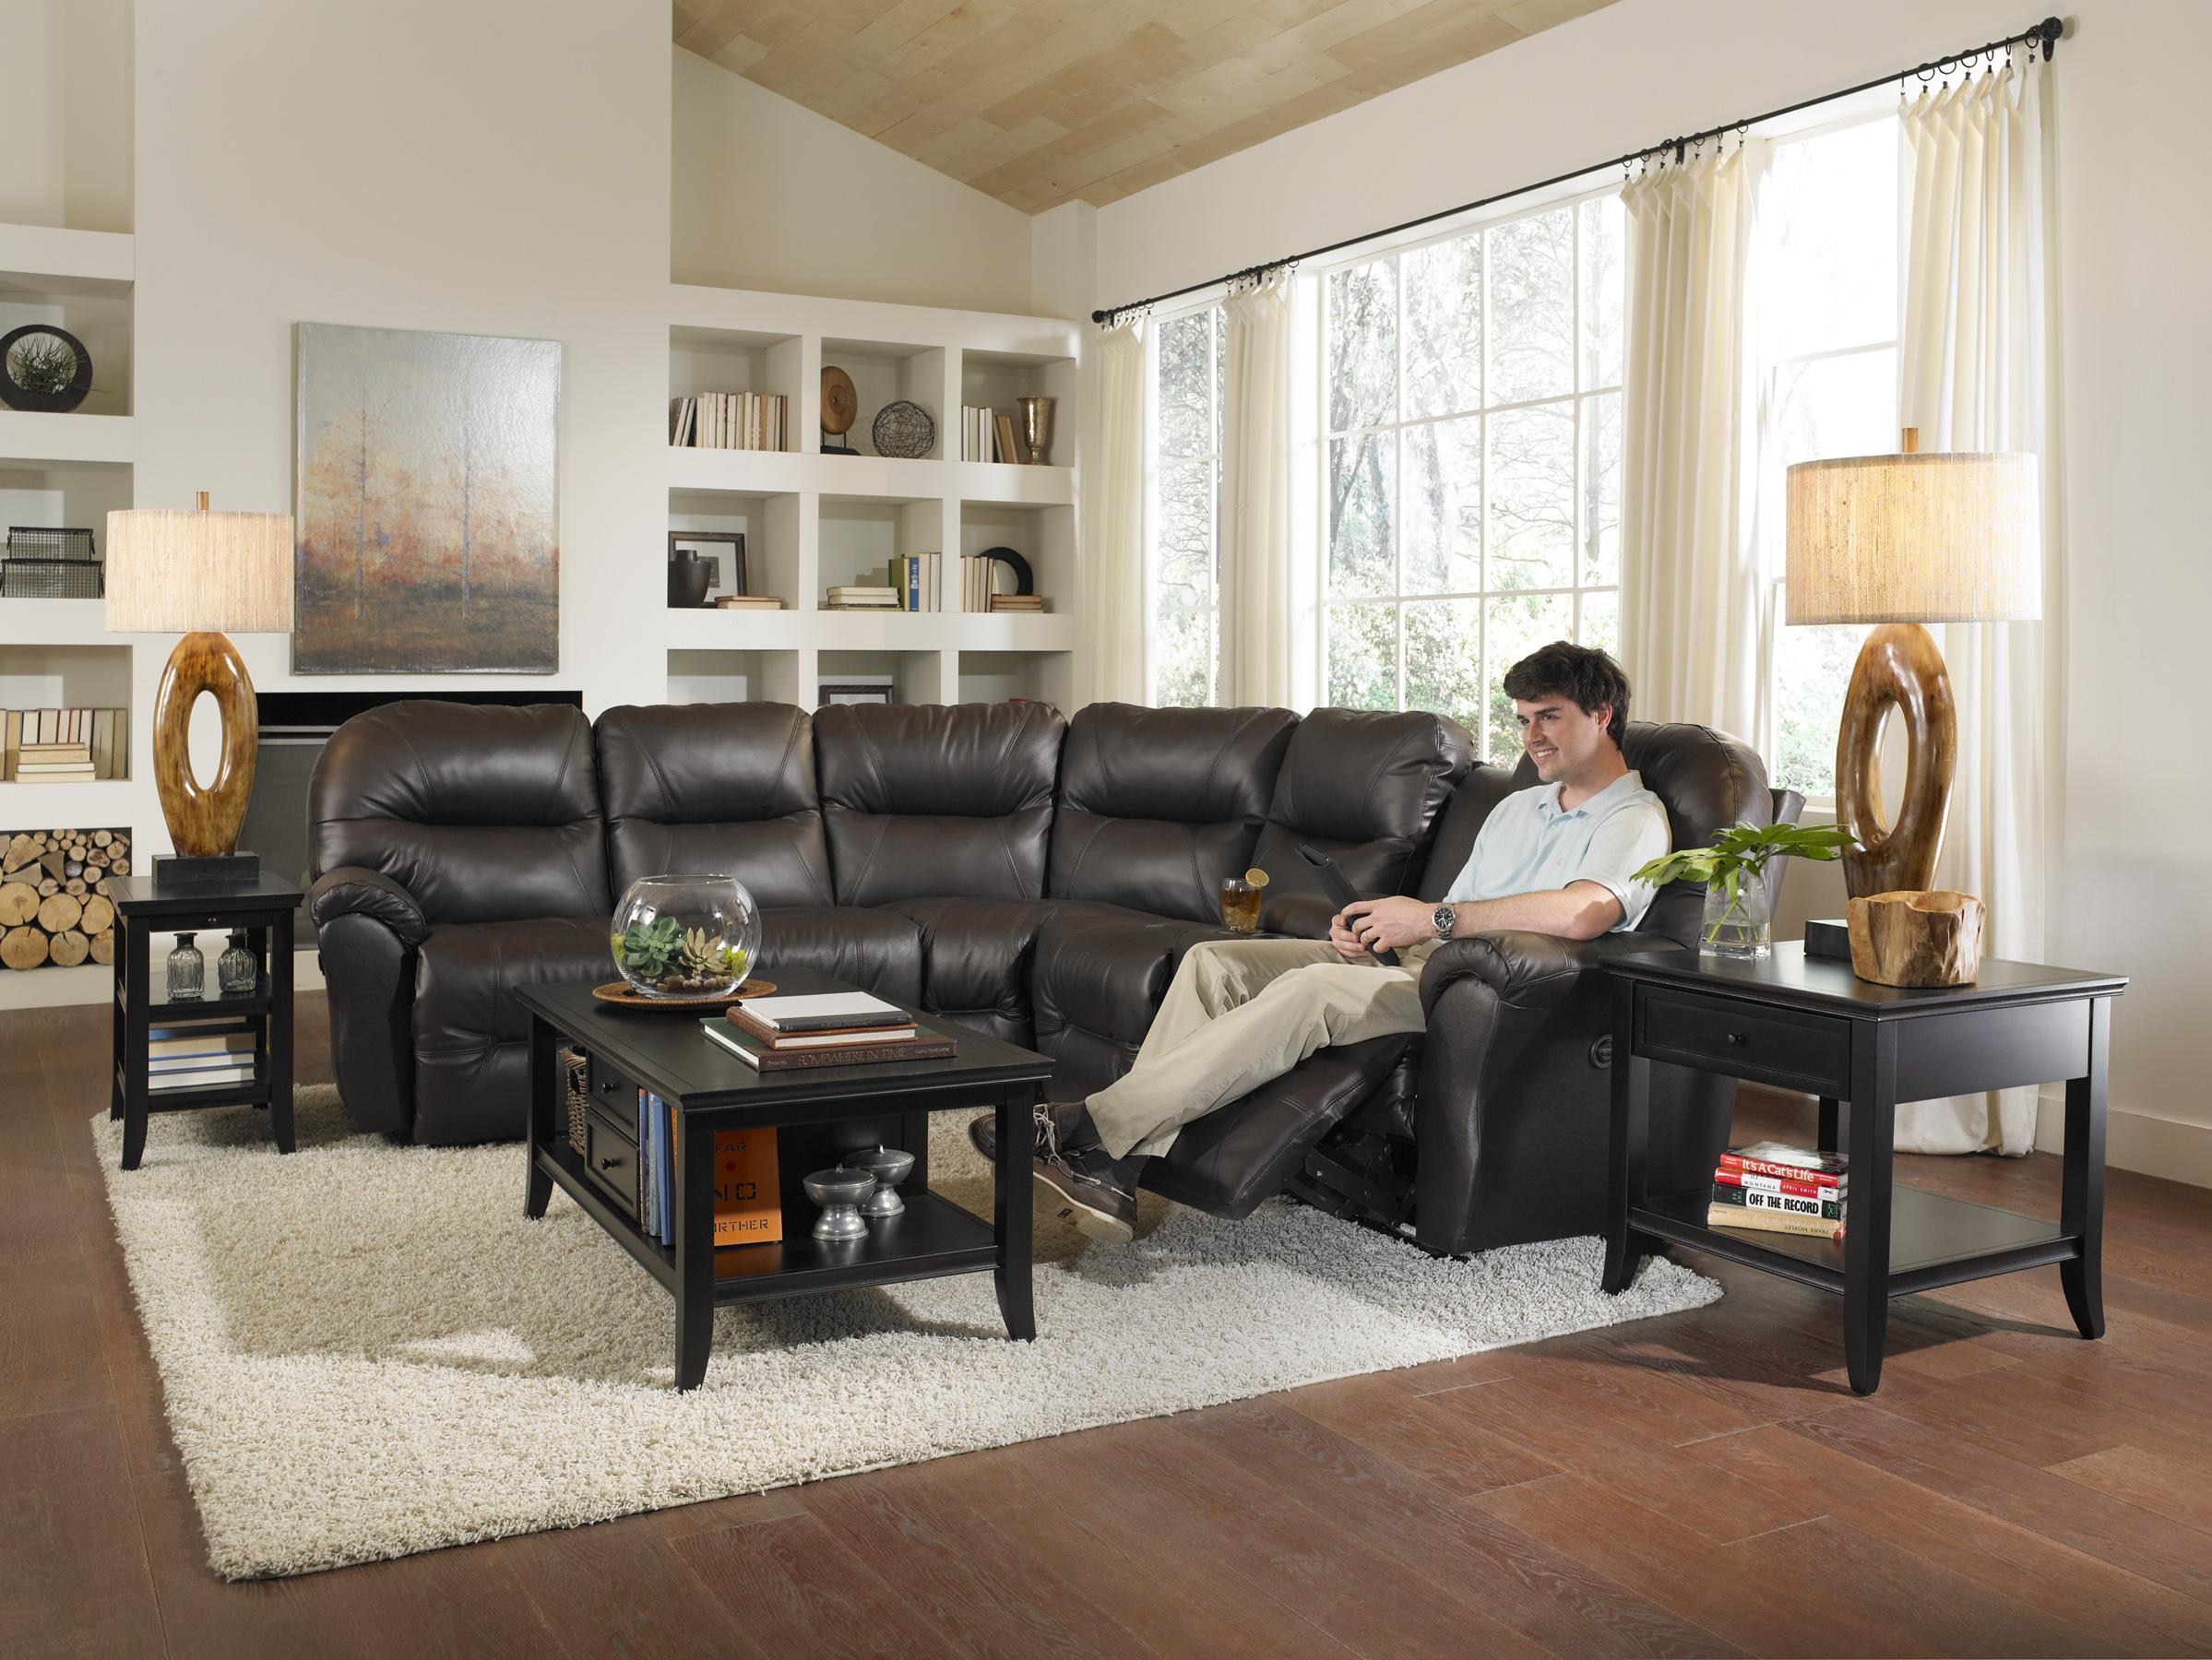 Best Home Furnishings Bodie Power Reclining Sofa Chaise | Godby Home  Furnishings | Reclining Sofas Noblesville, Carmel, Avon, Indianapolis,  Indiana